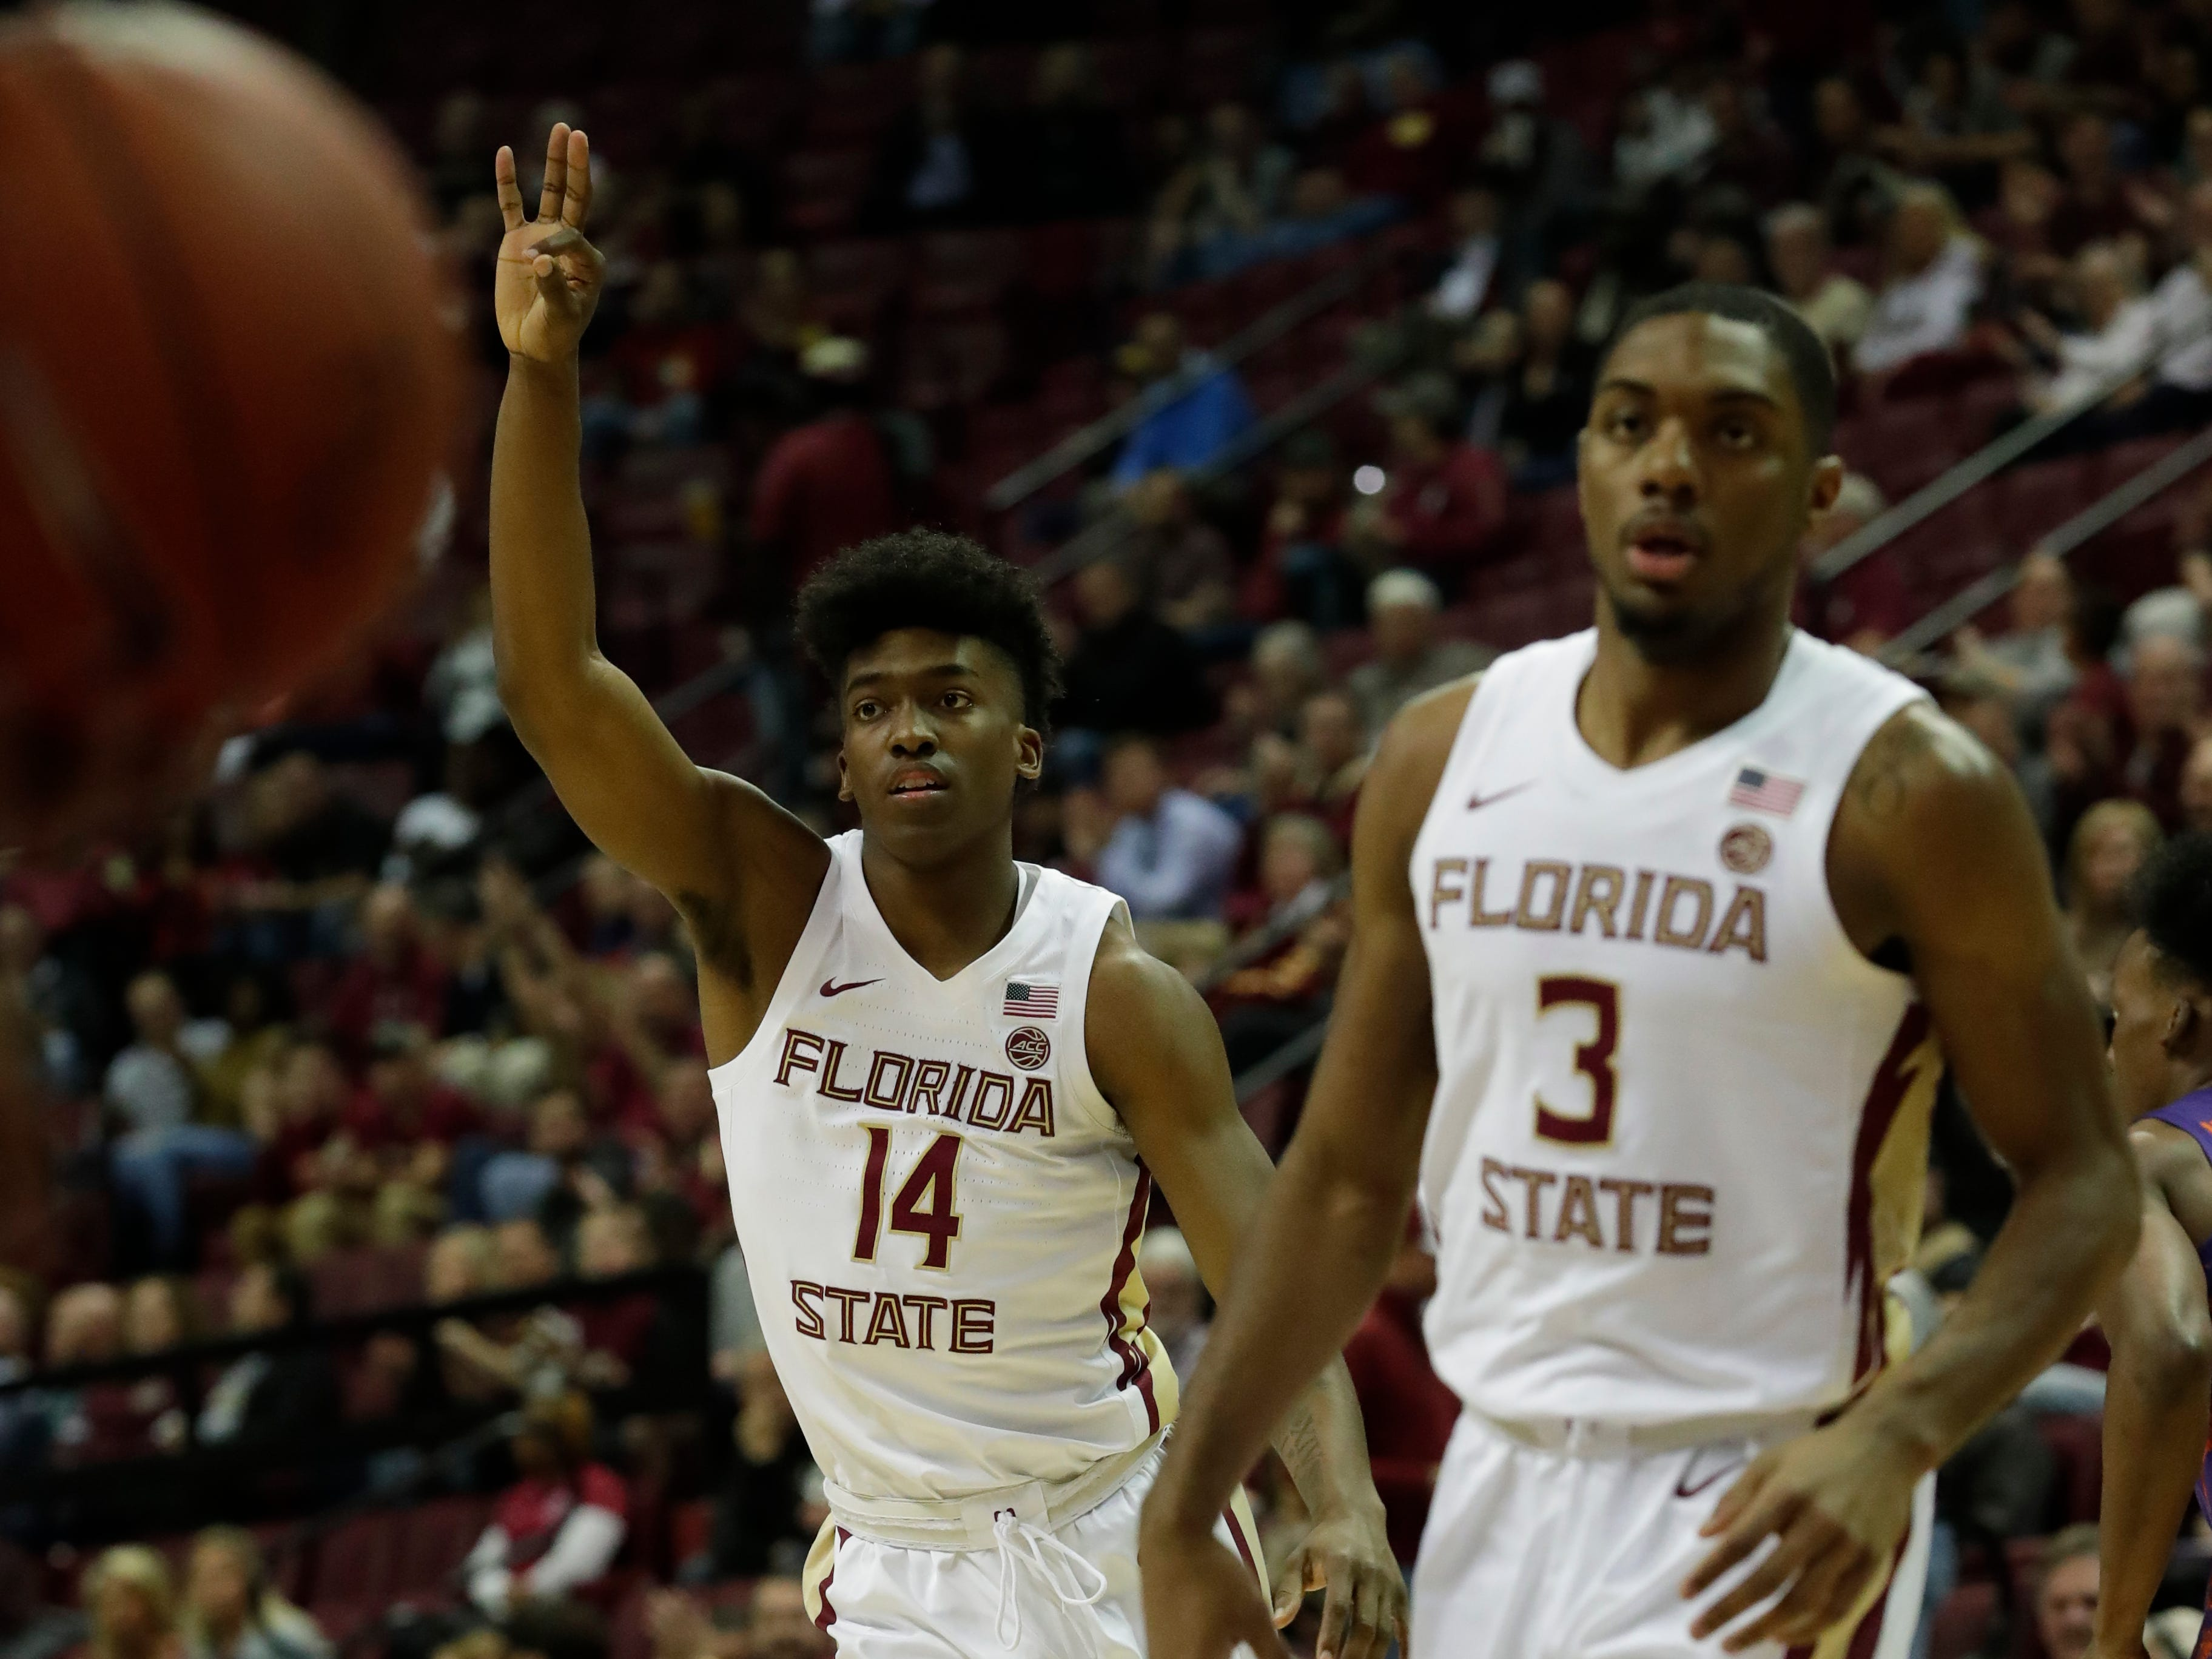 Florida State Seminoles guard Terance Mann (14) celebrates after his successful three-point shot. The Florida State Seminoles face off against the Clemson Tigers at the Tucker Civic Center, Tuesday, Jan. 22, 2019.